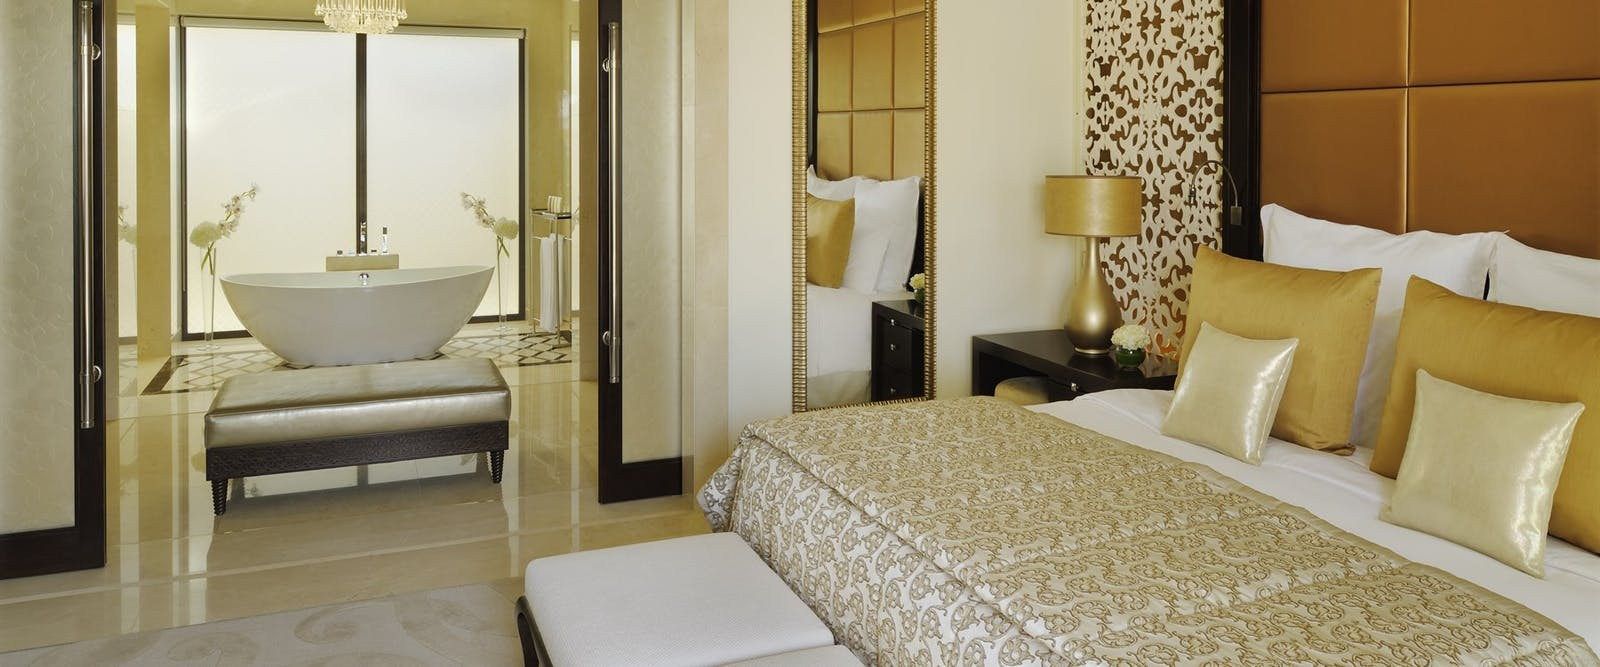 Villa Master Bedroom at One&Only The Palm, Dubai